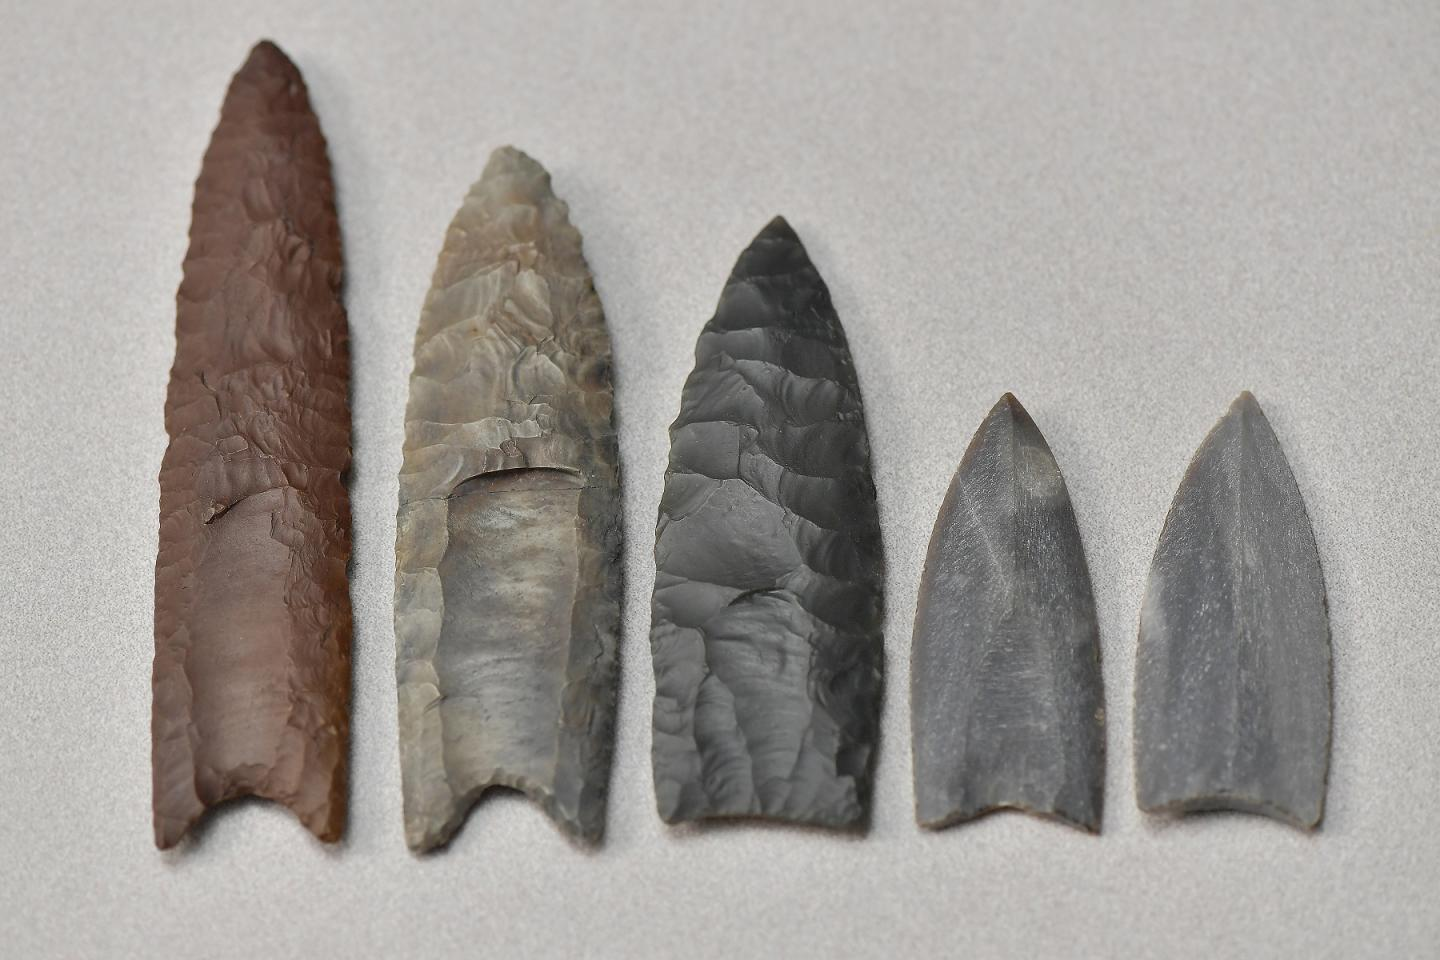 A Collection of Clovis Point Replicas and Casts